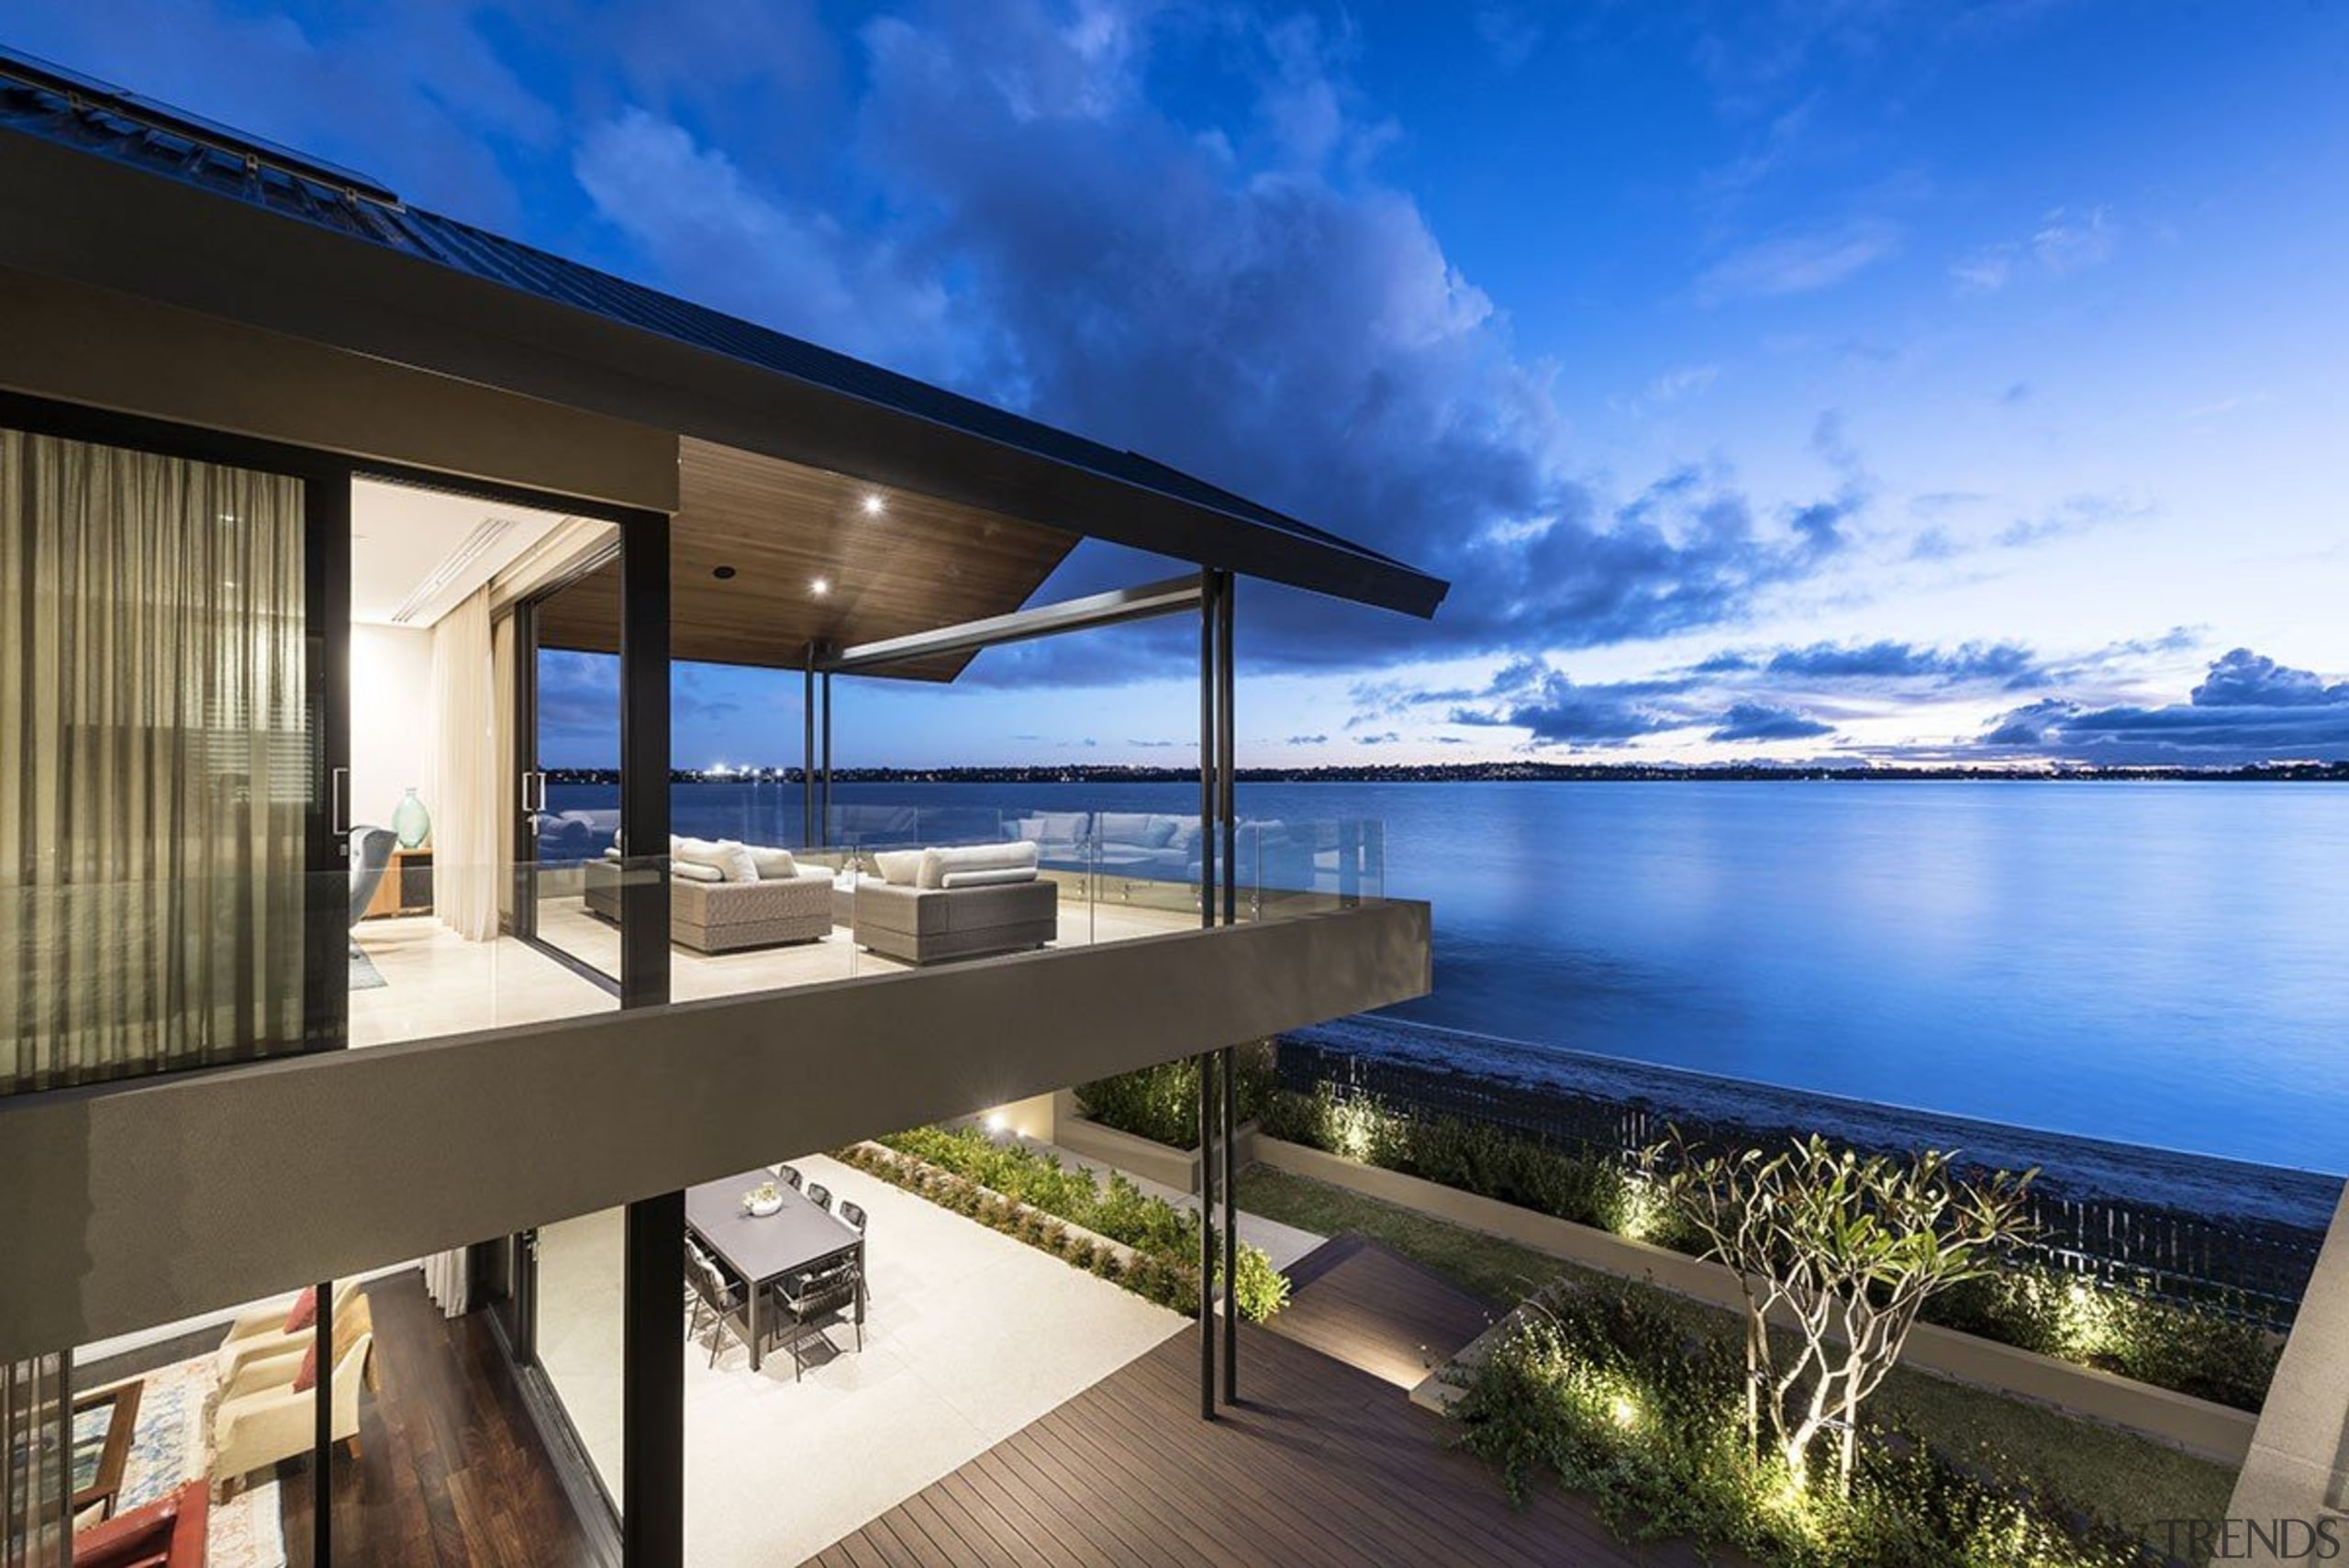 Urbane Projects, PerthSee more from Urbane apartment, architecture, condominium, estate, home, house, penthouse apartment, property, real estate, resort, sky, villa, teal